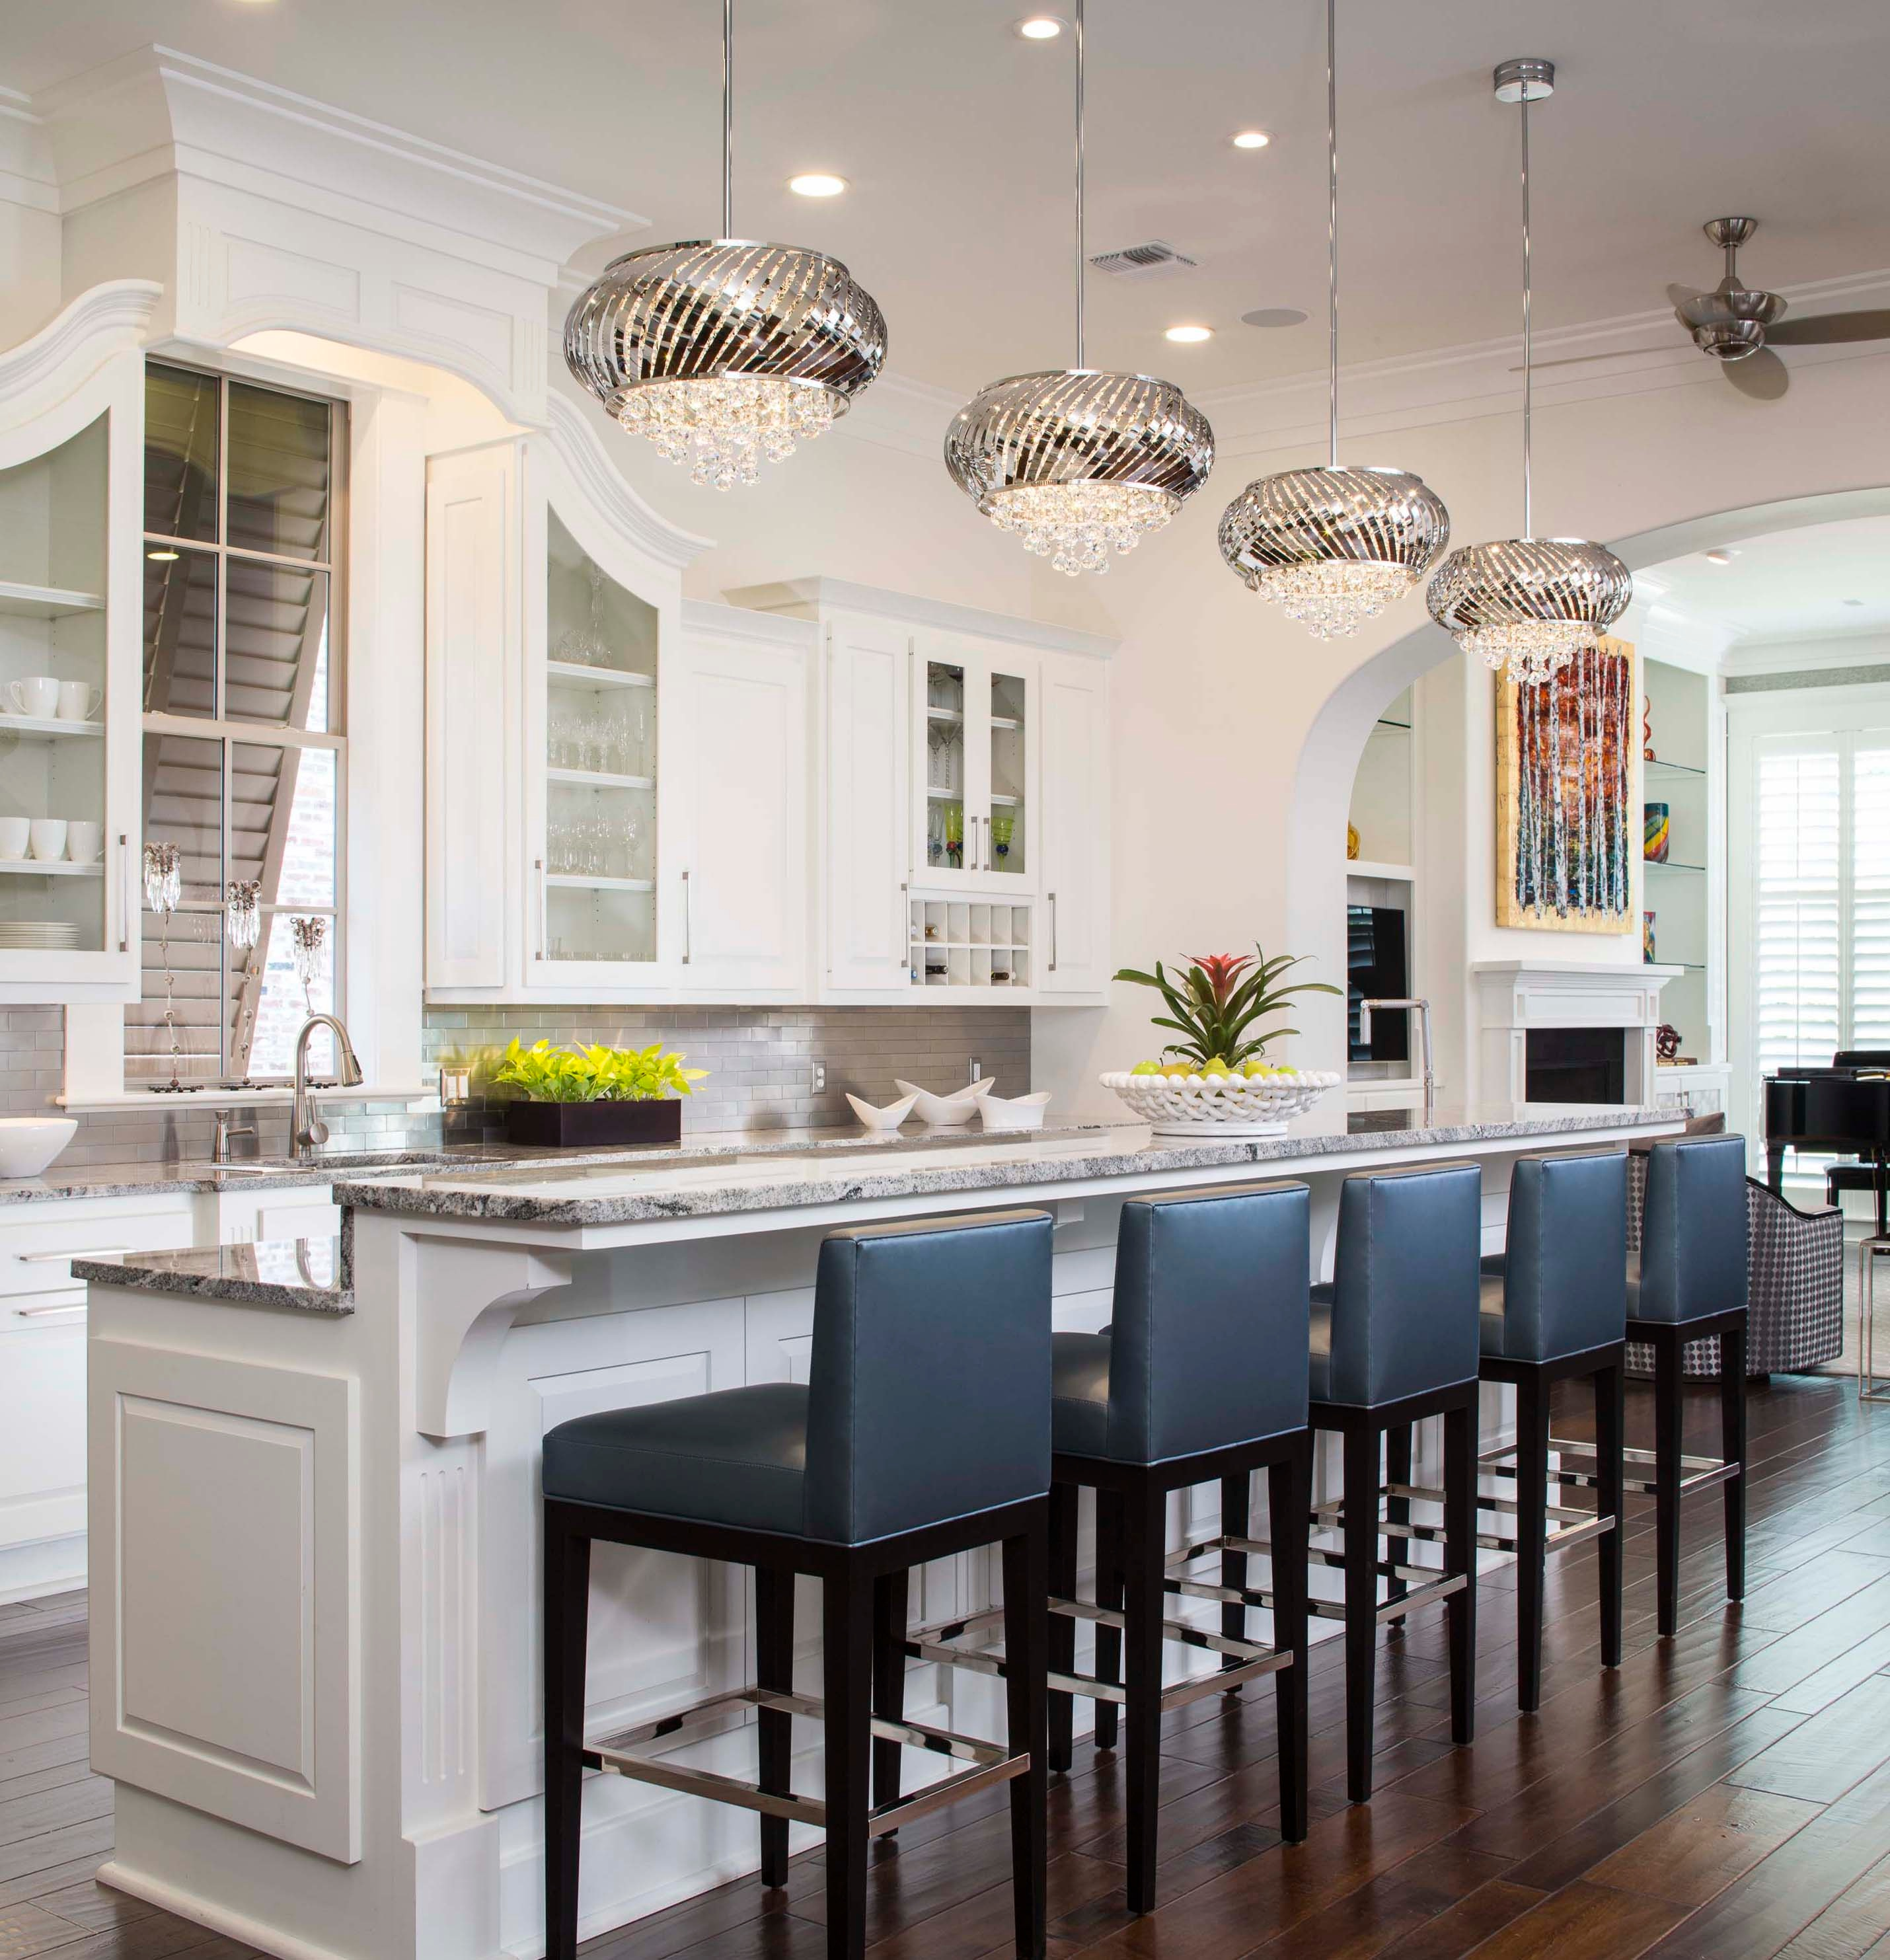 Kitchen Bar Lighting Ideas: How To Make Your House Look Traditional